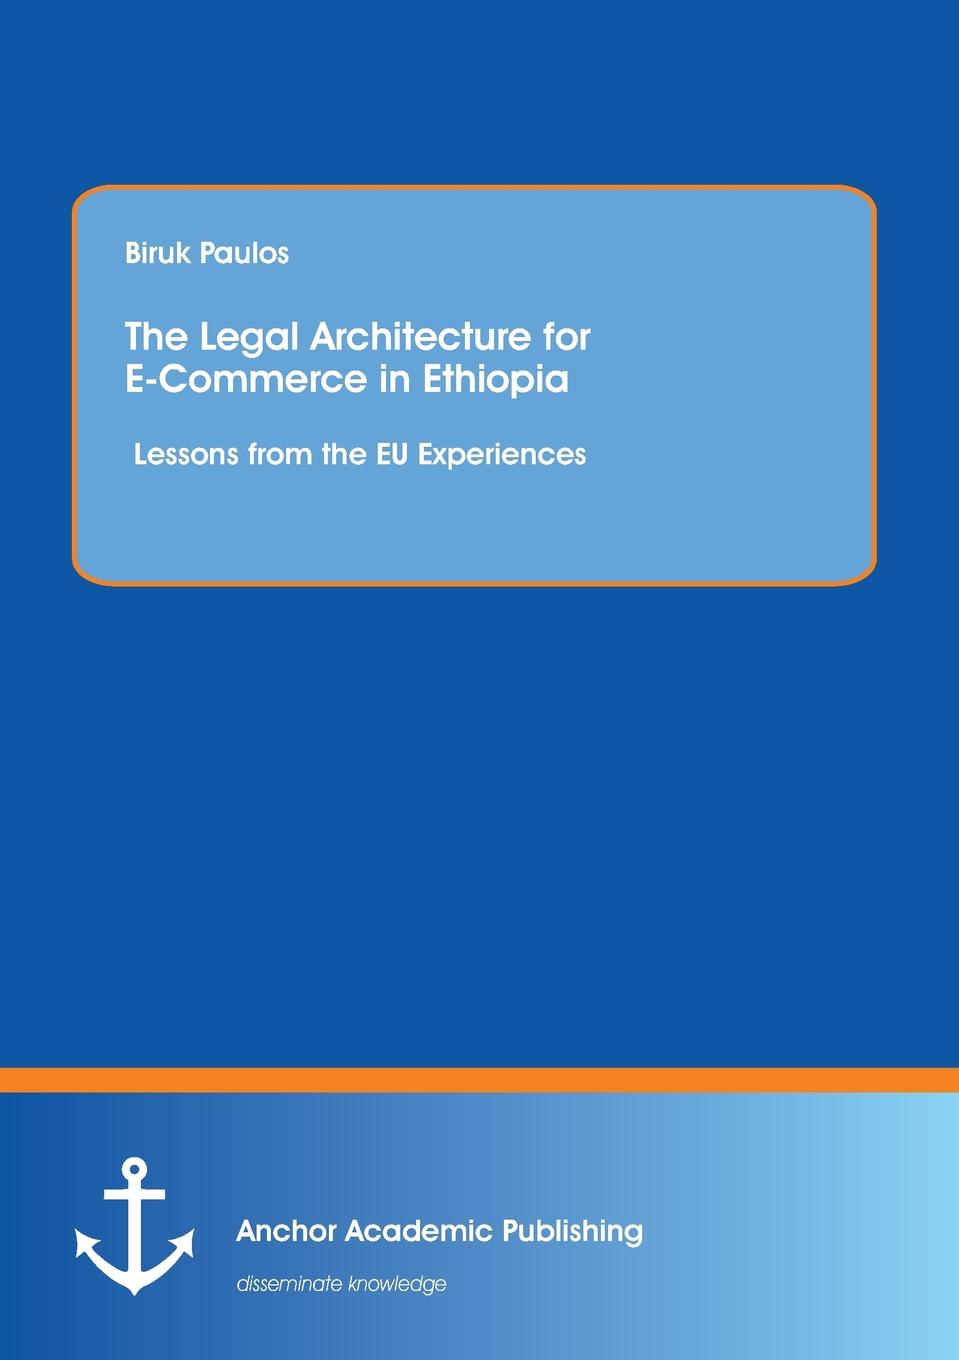 Biruk Paulos The Legal Architecture for E-Commerce in Ethiopia. Lessons from the EU Experiences joe vitale the e code 34 internet superstars reveal 44 ways to make money online almost instantly using only e mail